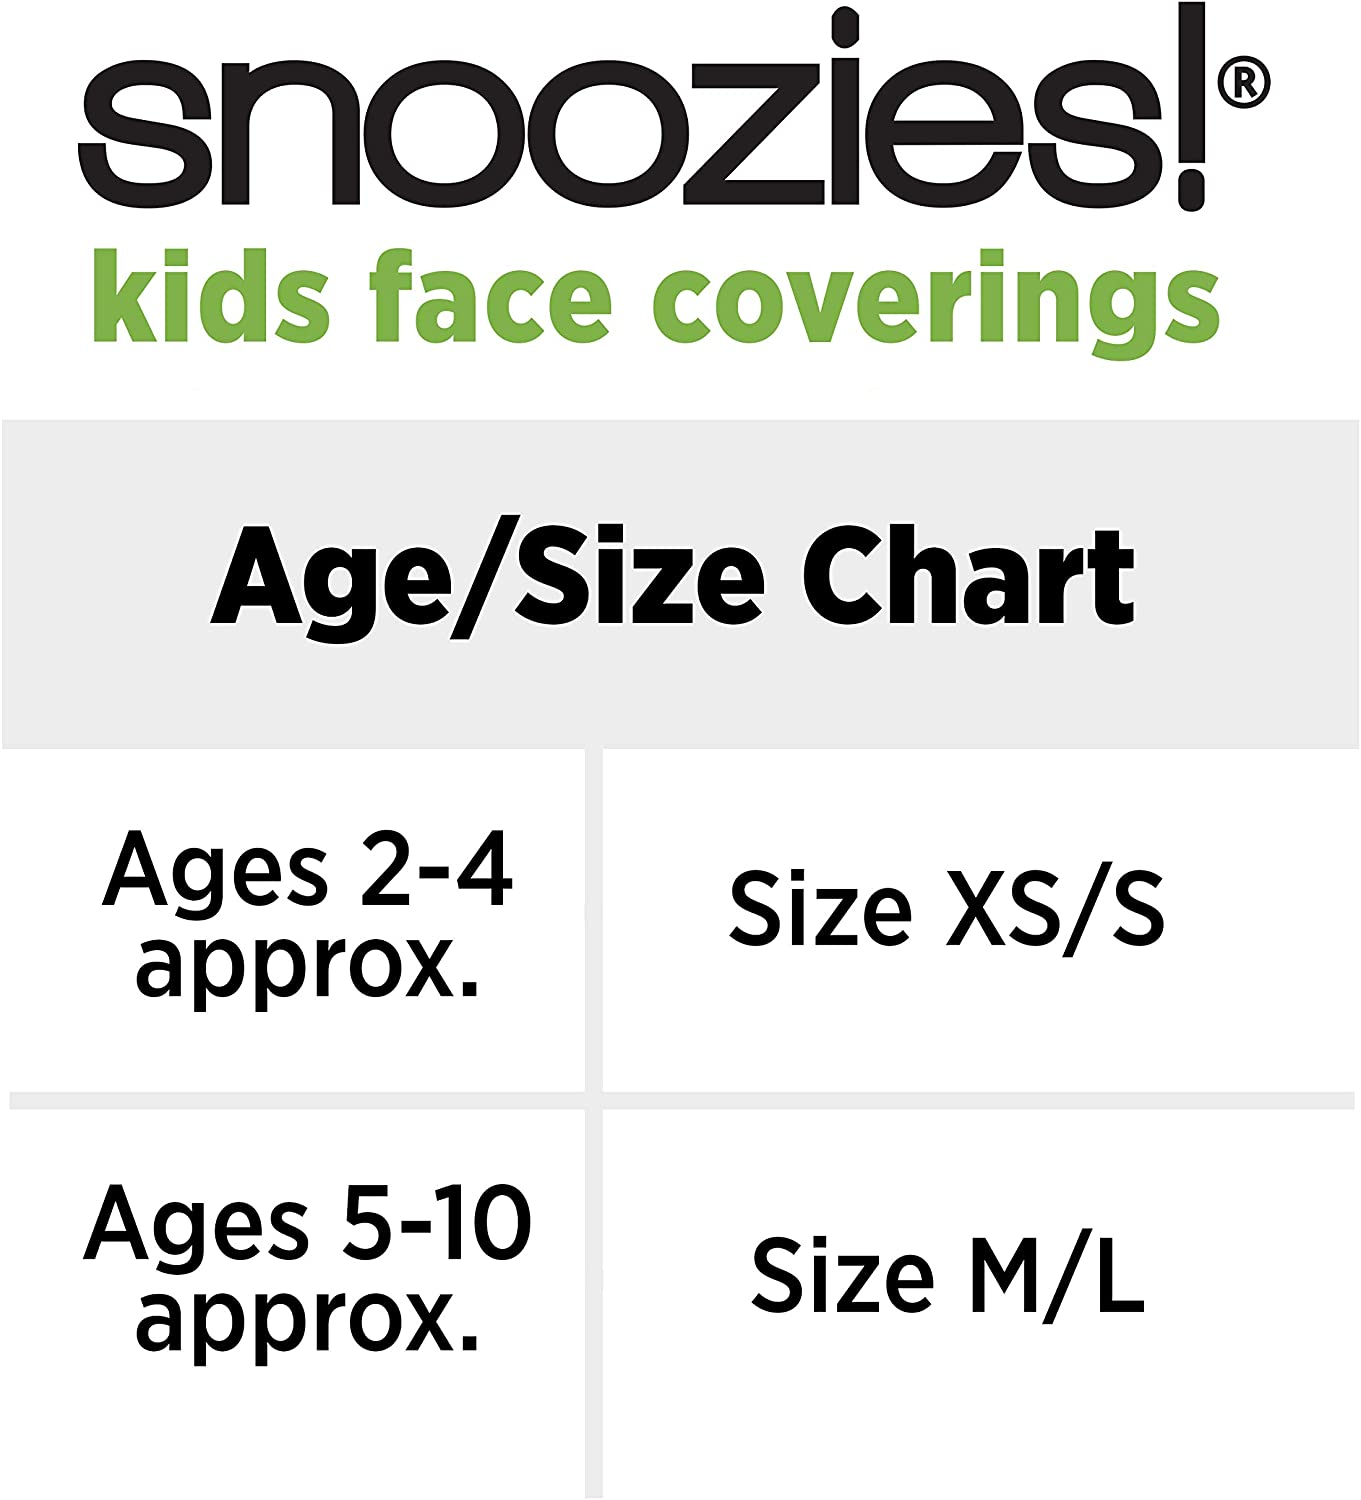 Snoozies Kids Face Coverings Size Chart